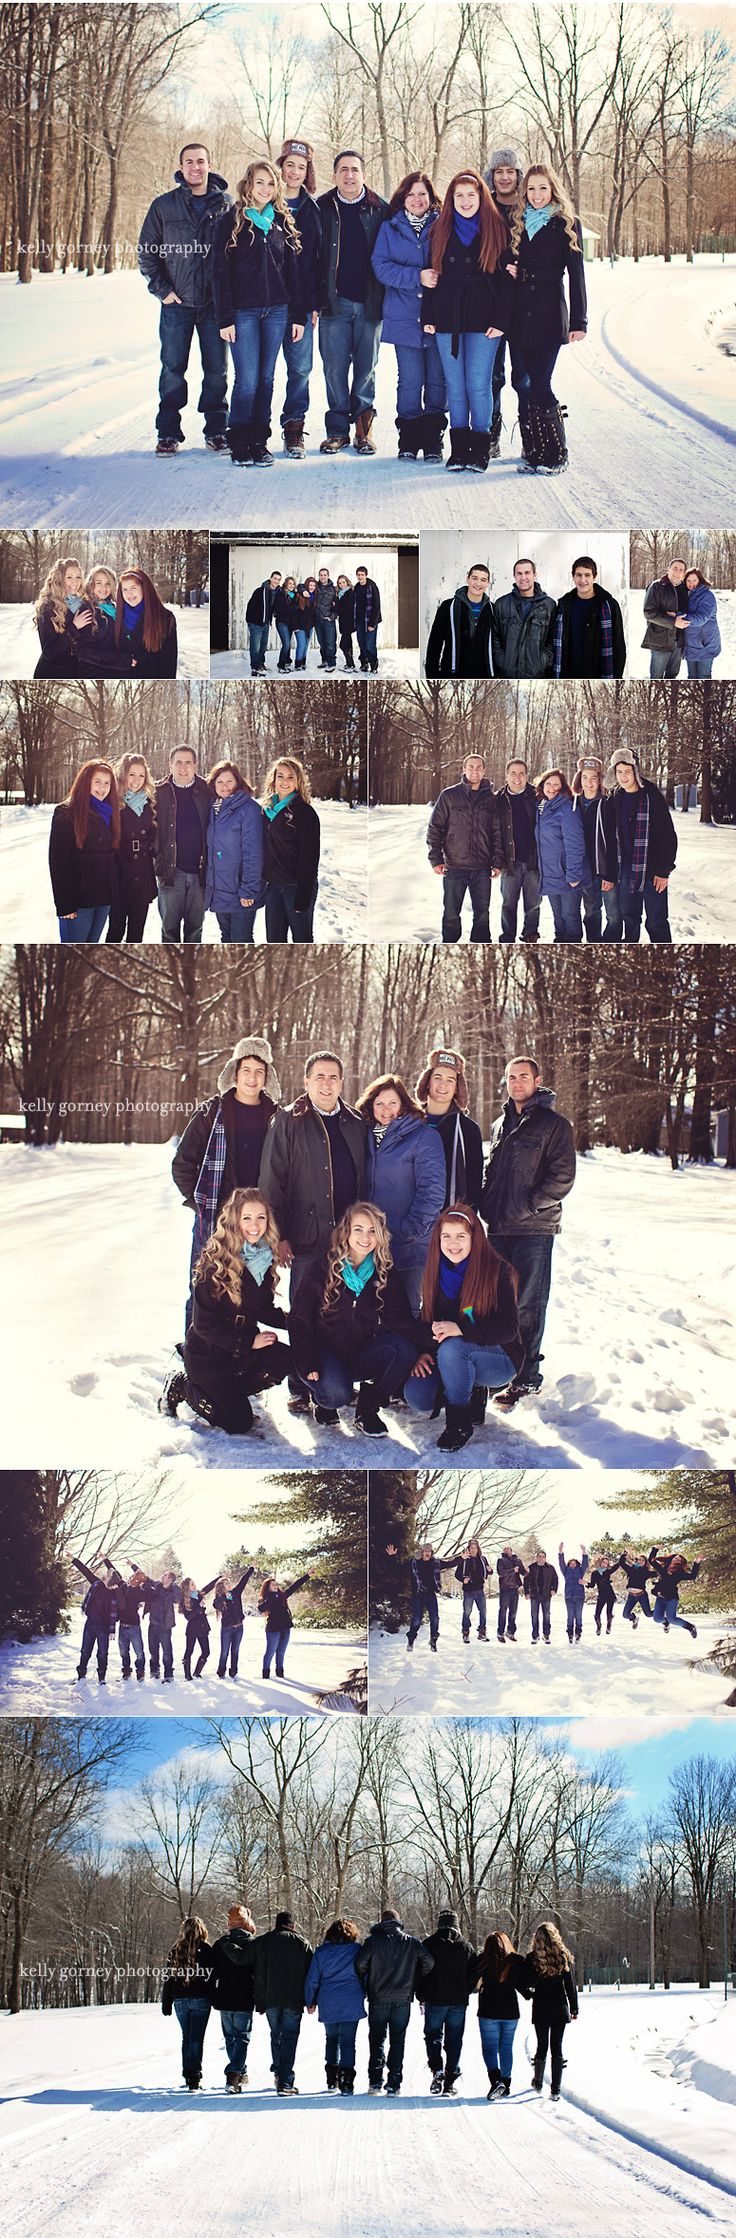 Winter Family Session | Kelly Gorney Photography